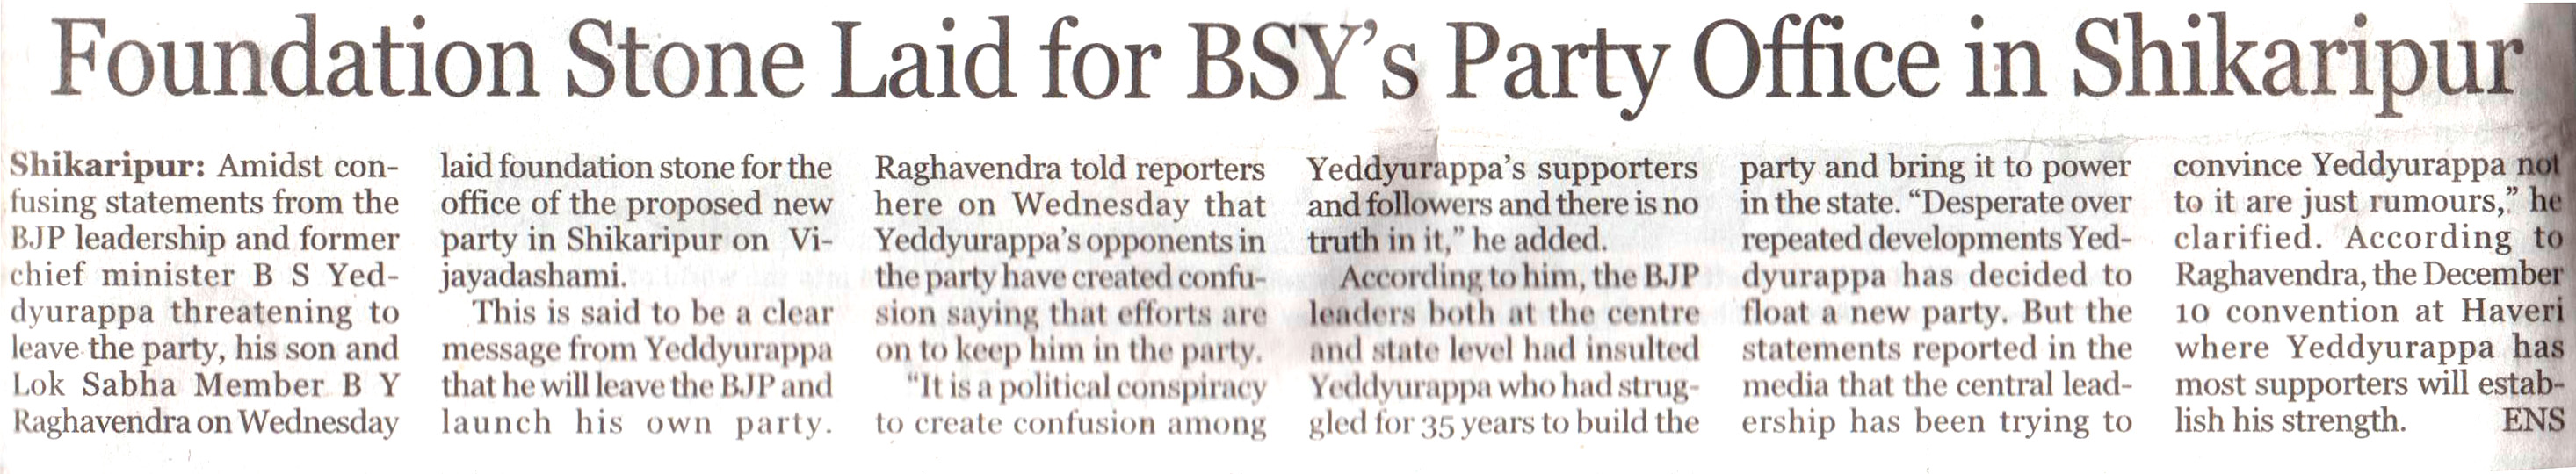 Foundation Stone Laid for BSY's Party Office in Shikaripur